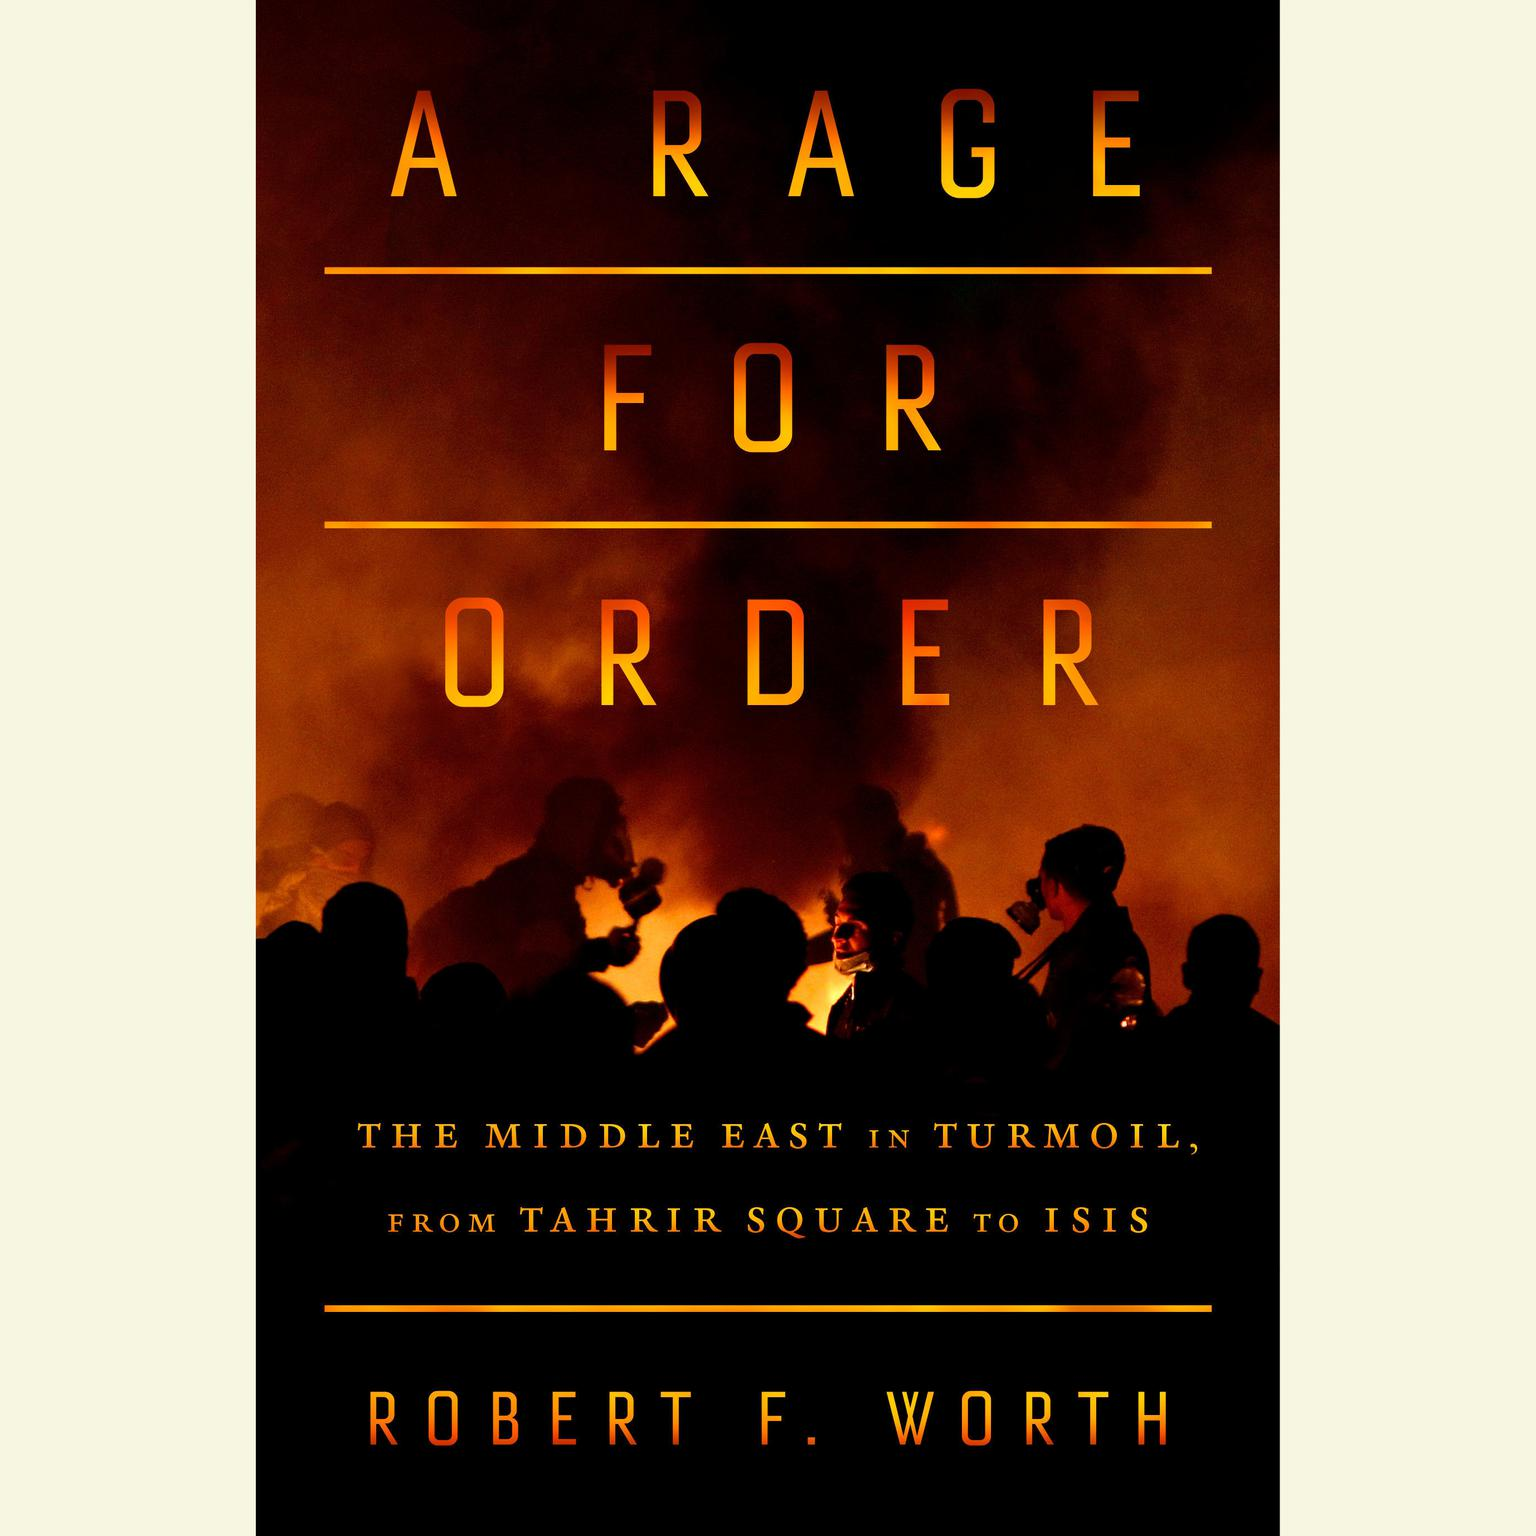 Printable A Rage for Order: The Middle East in Turmoil, from Tahrir Square to ISIS Audiobook Cover Art